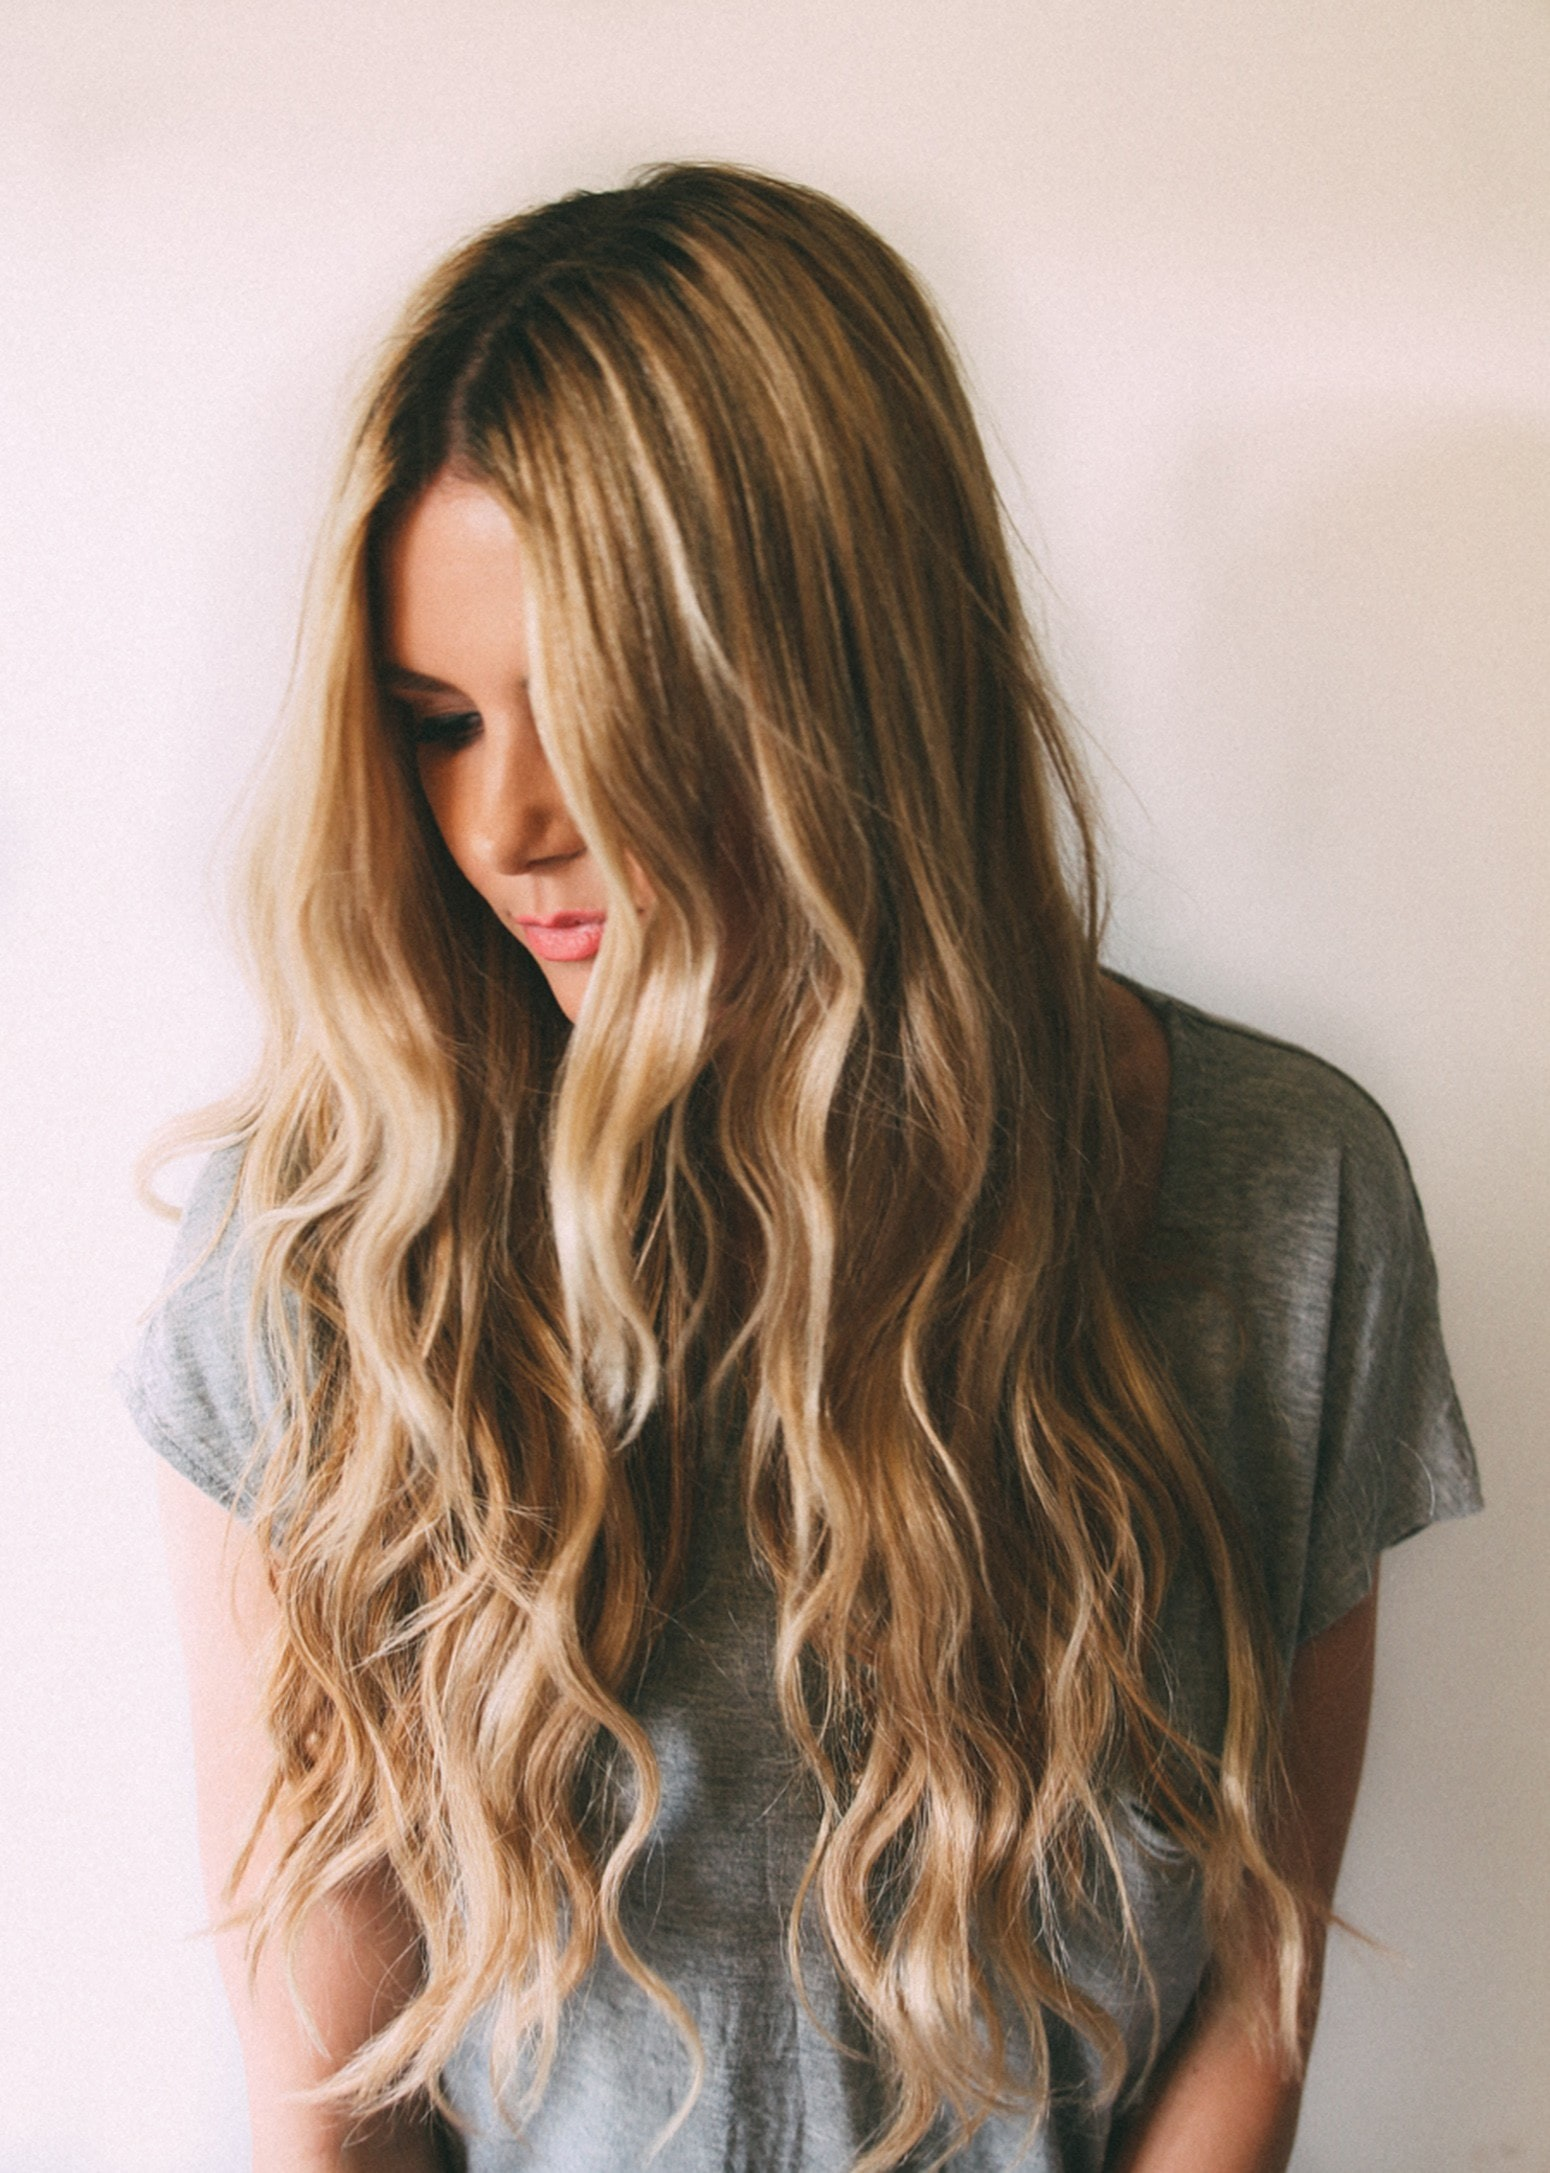 woman pictured with long blonde beach waves in her hair.